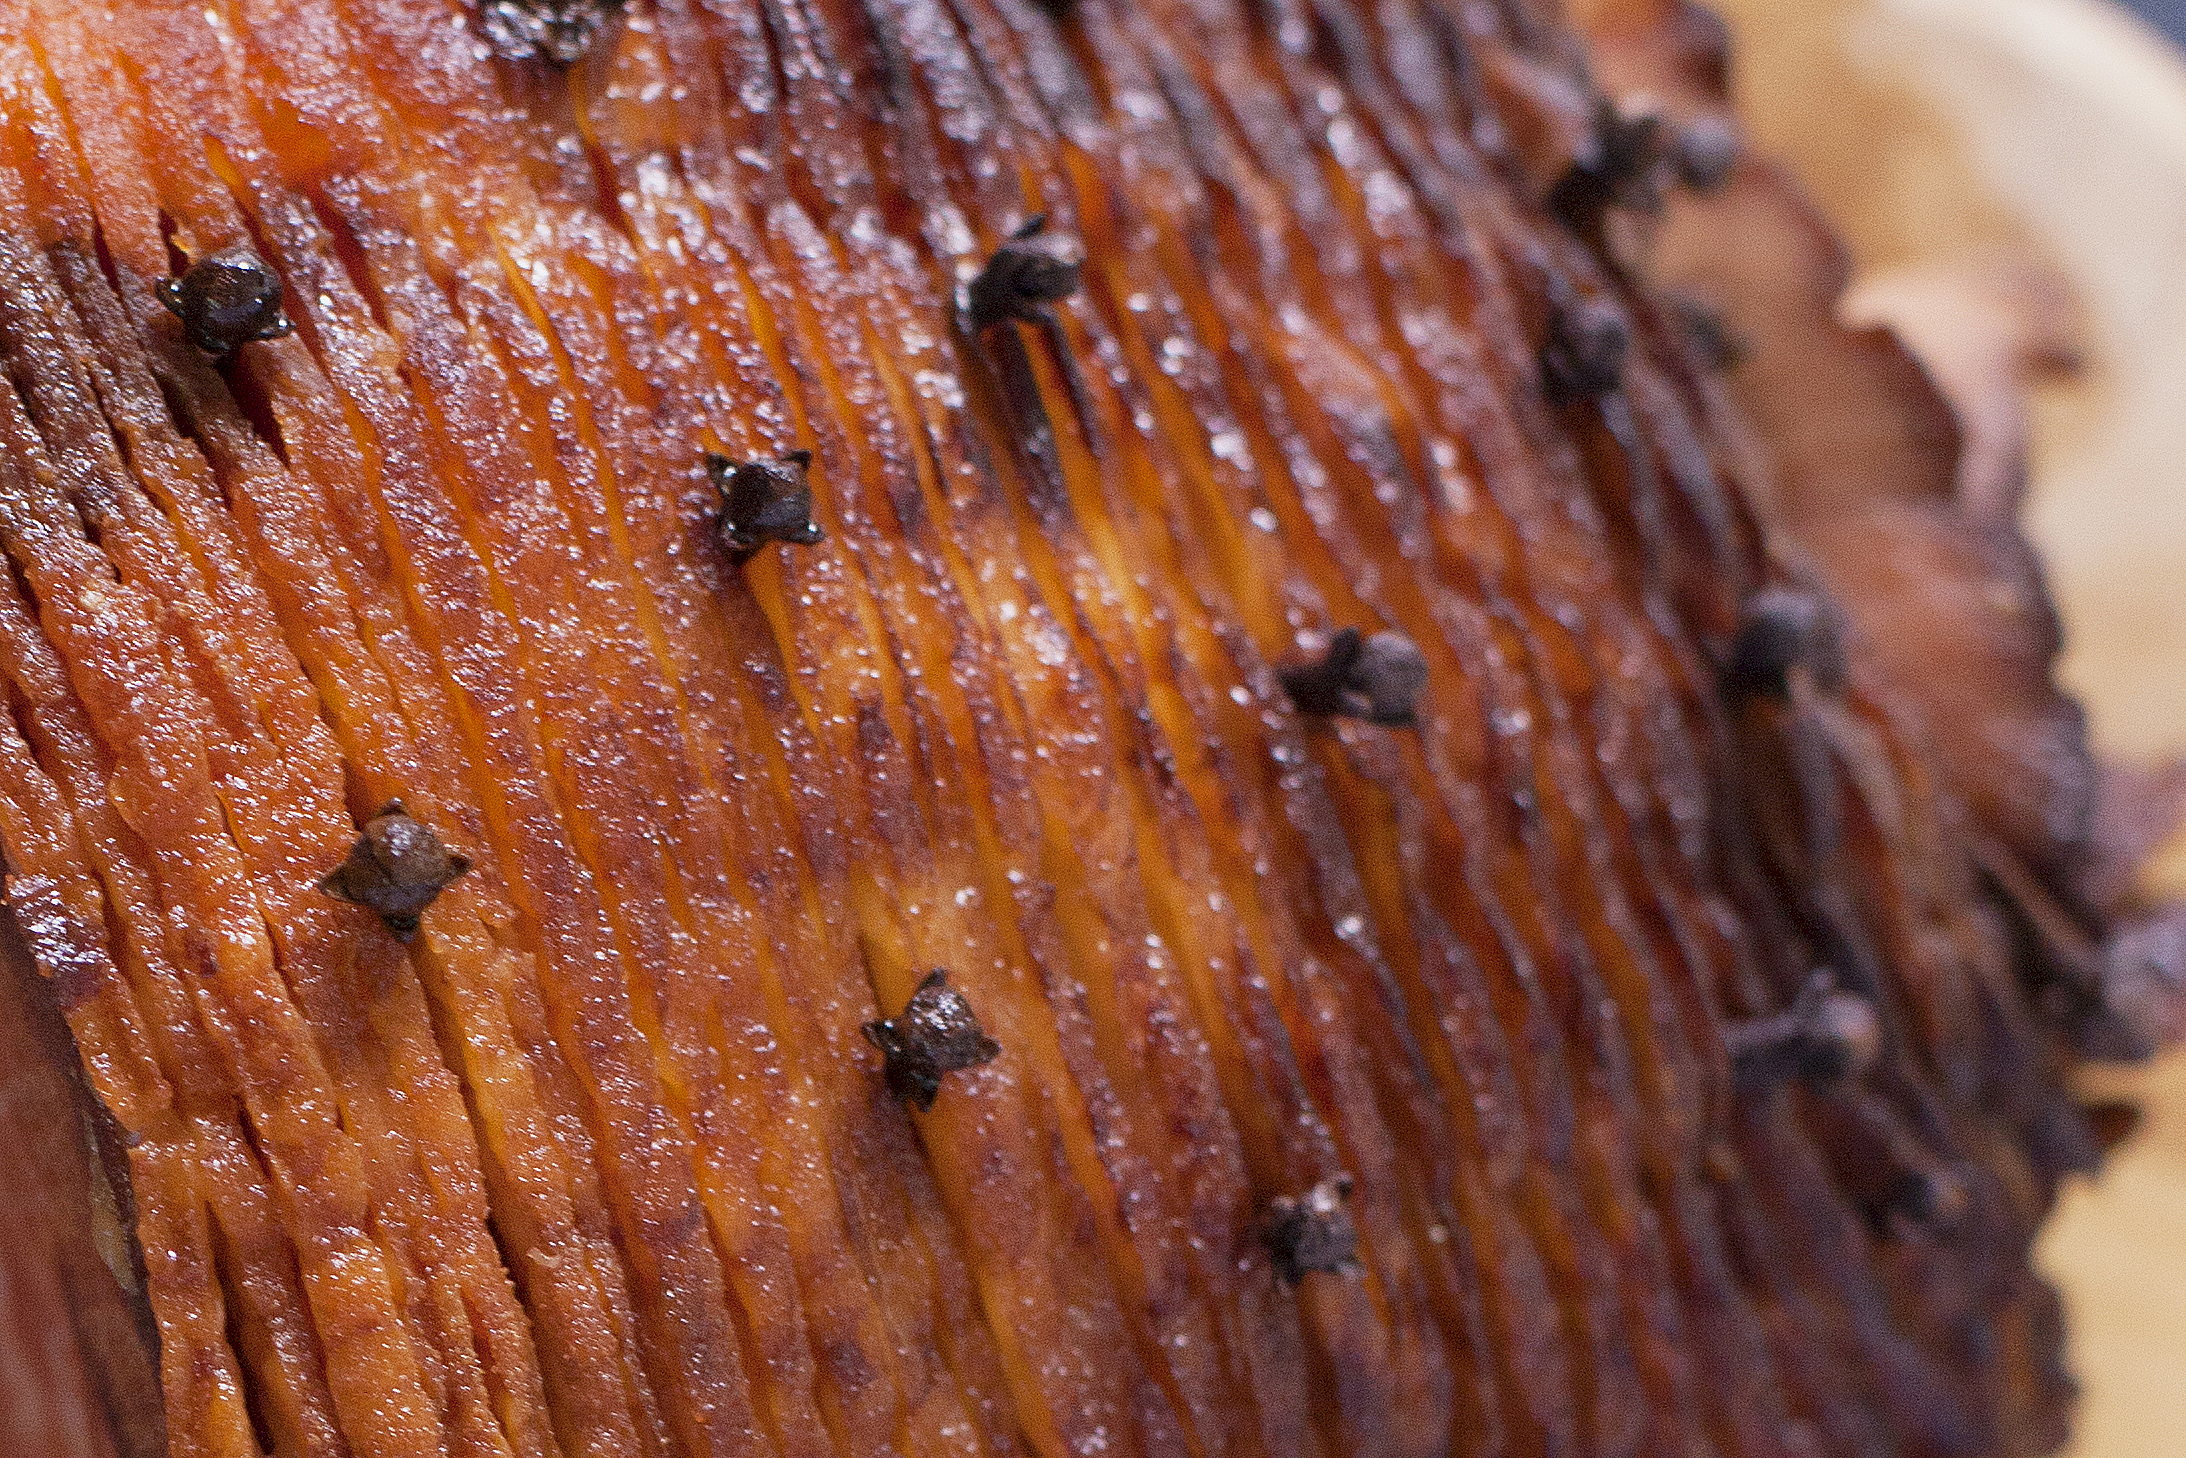 Cloves in Honey Baked Ham